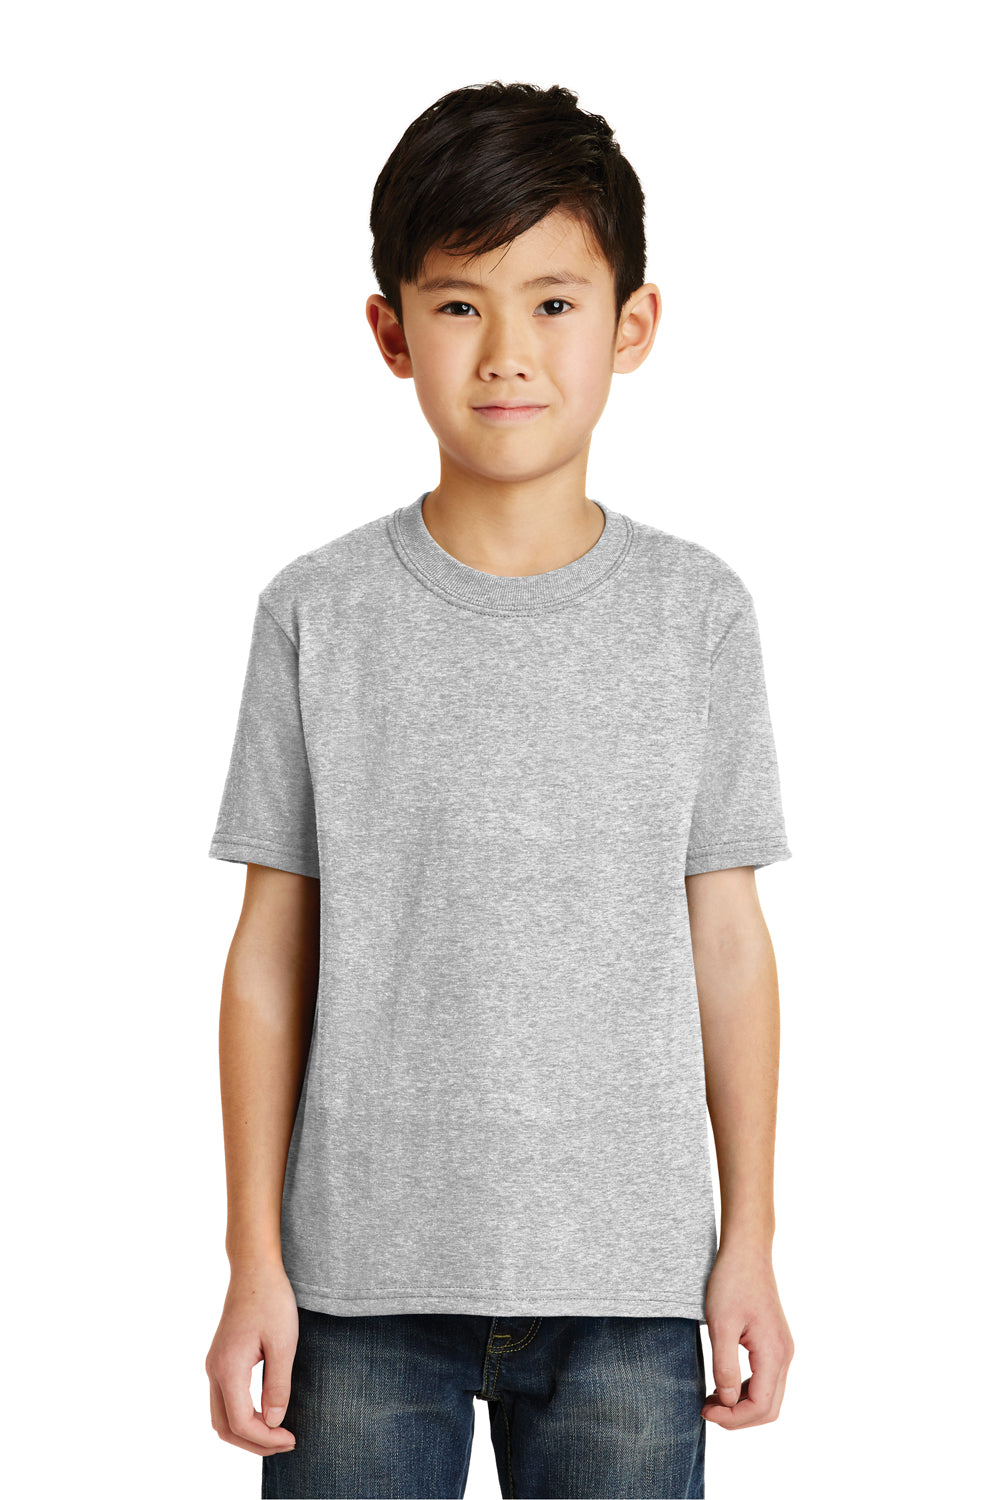 Port & Company PC55Y Youth Core Short Sleeve Crewneck T-Shirt Ash Grey Front